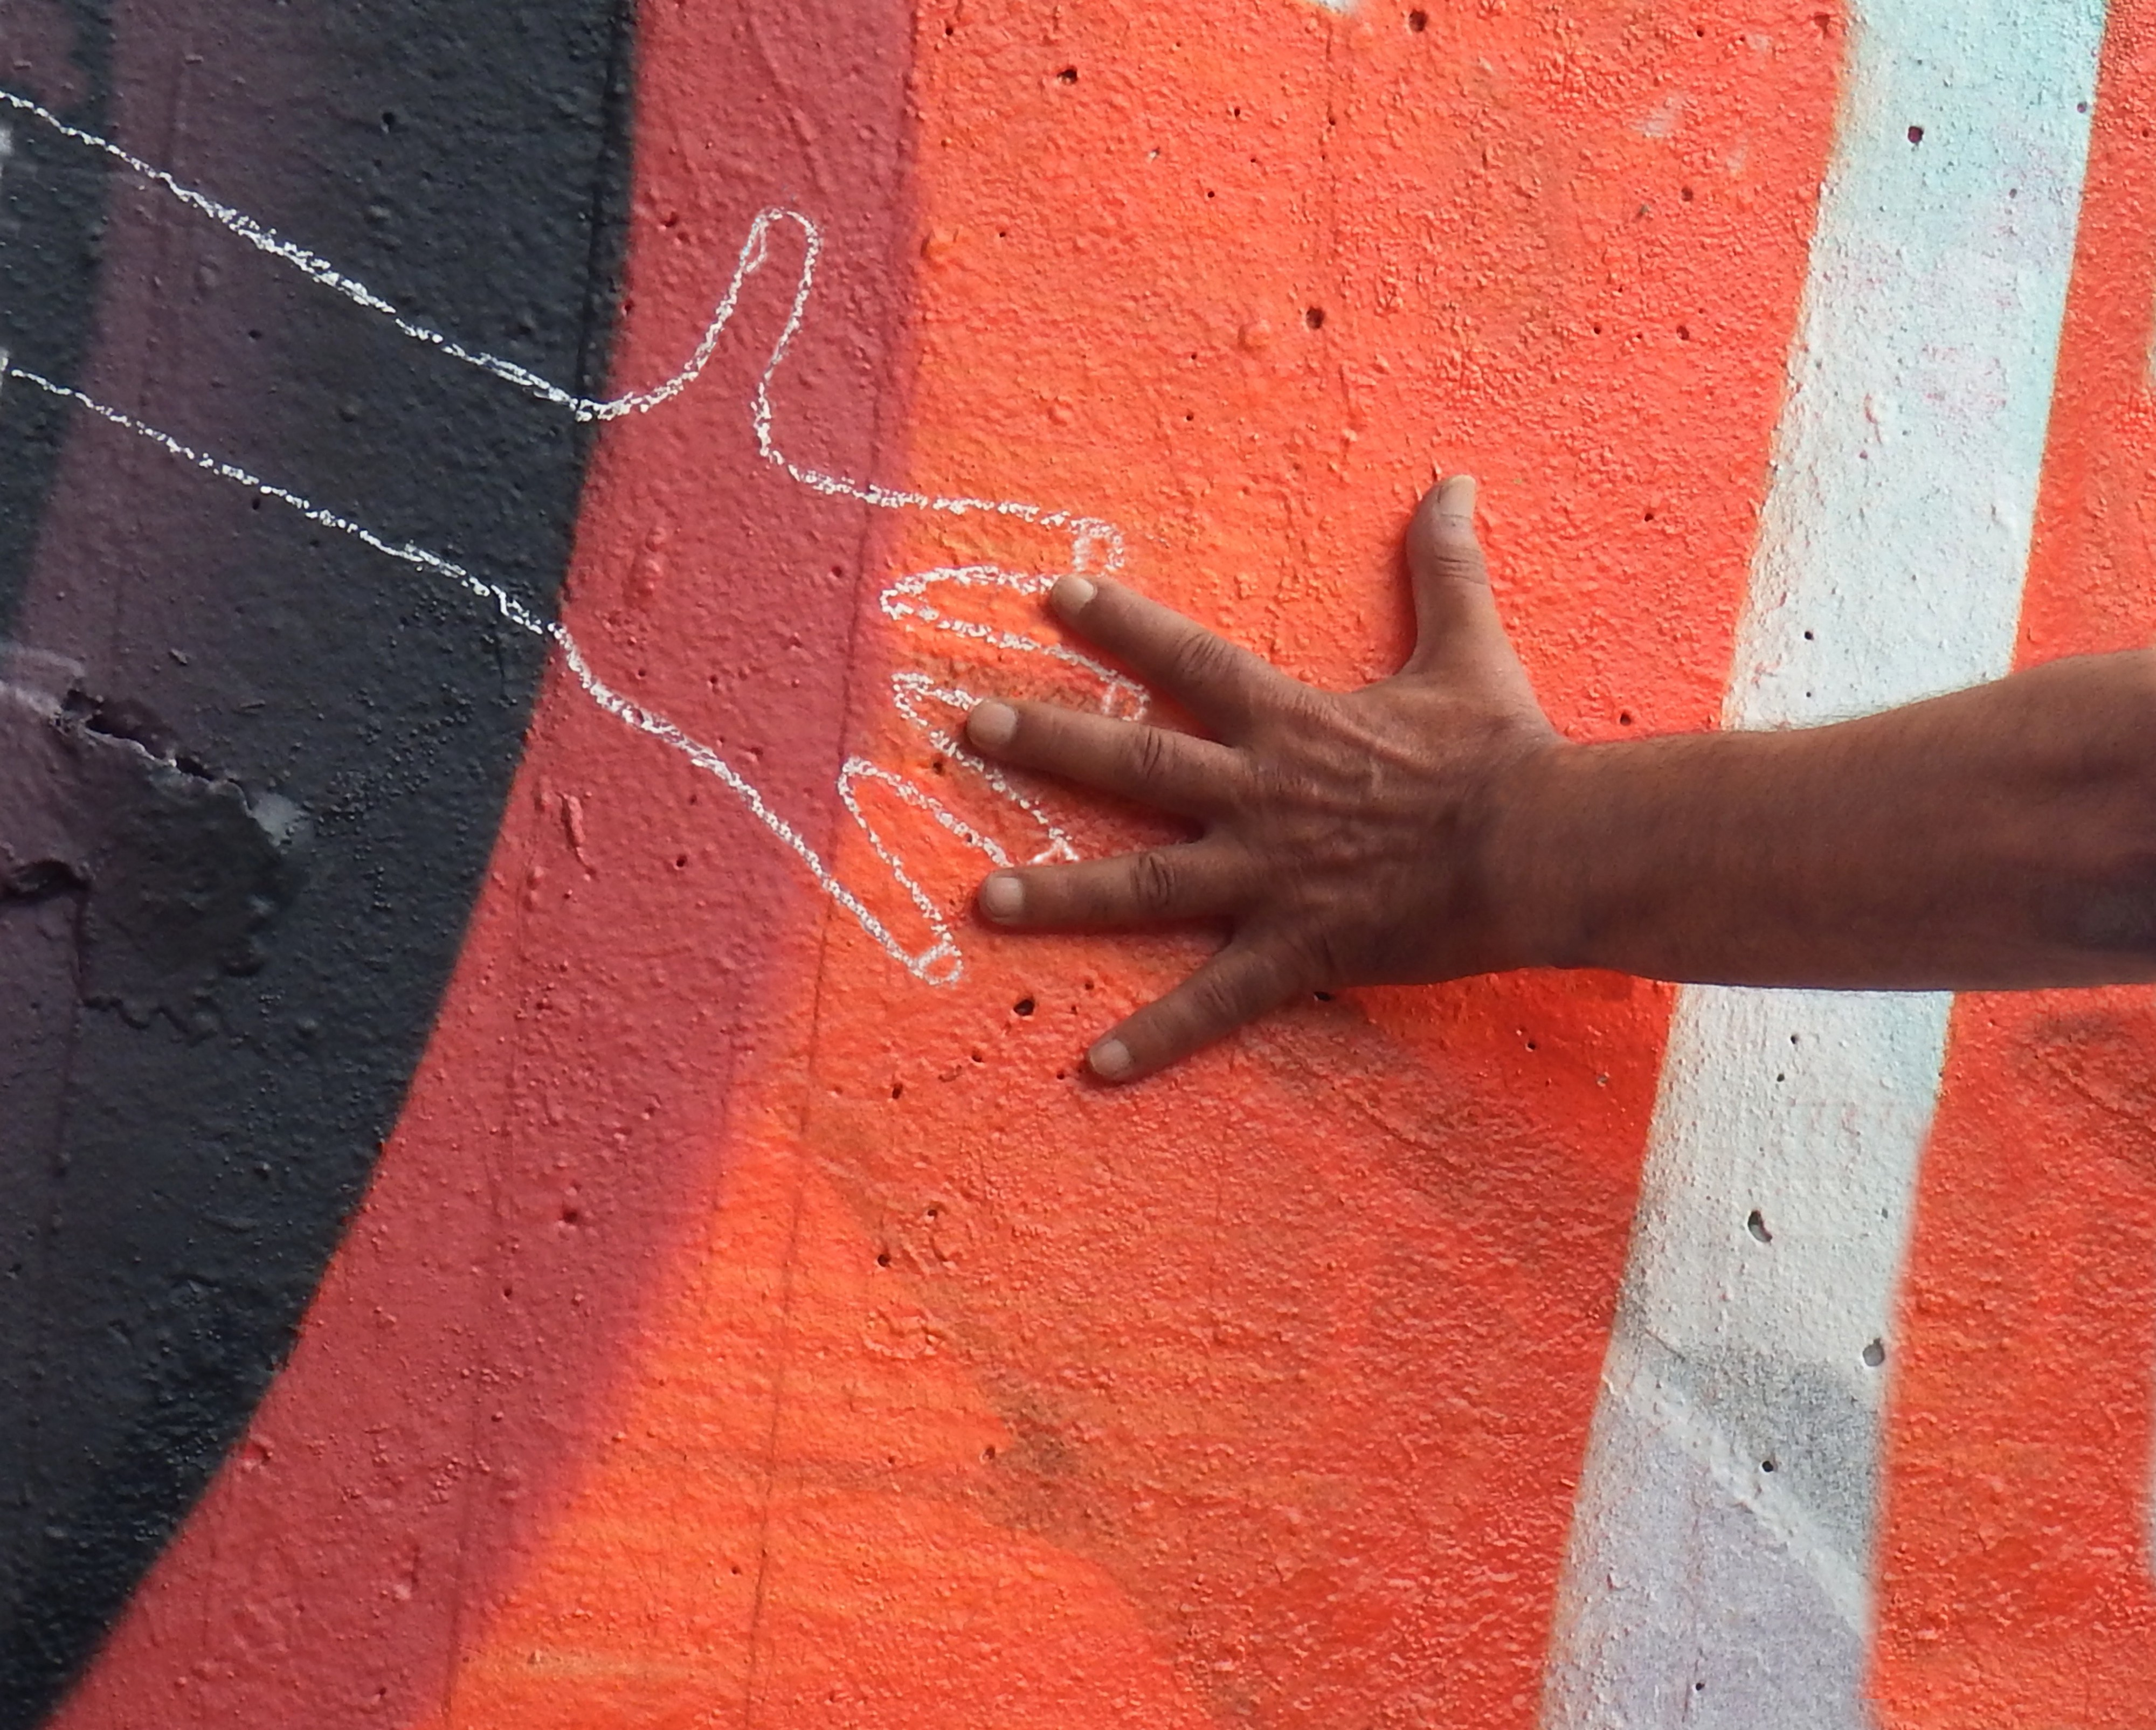 One hand holding the chalk outline of another hand on a wall.